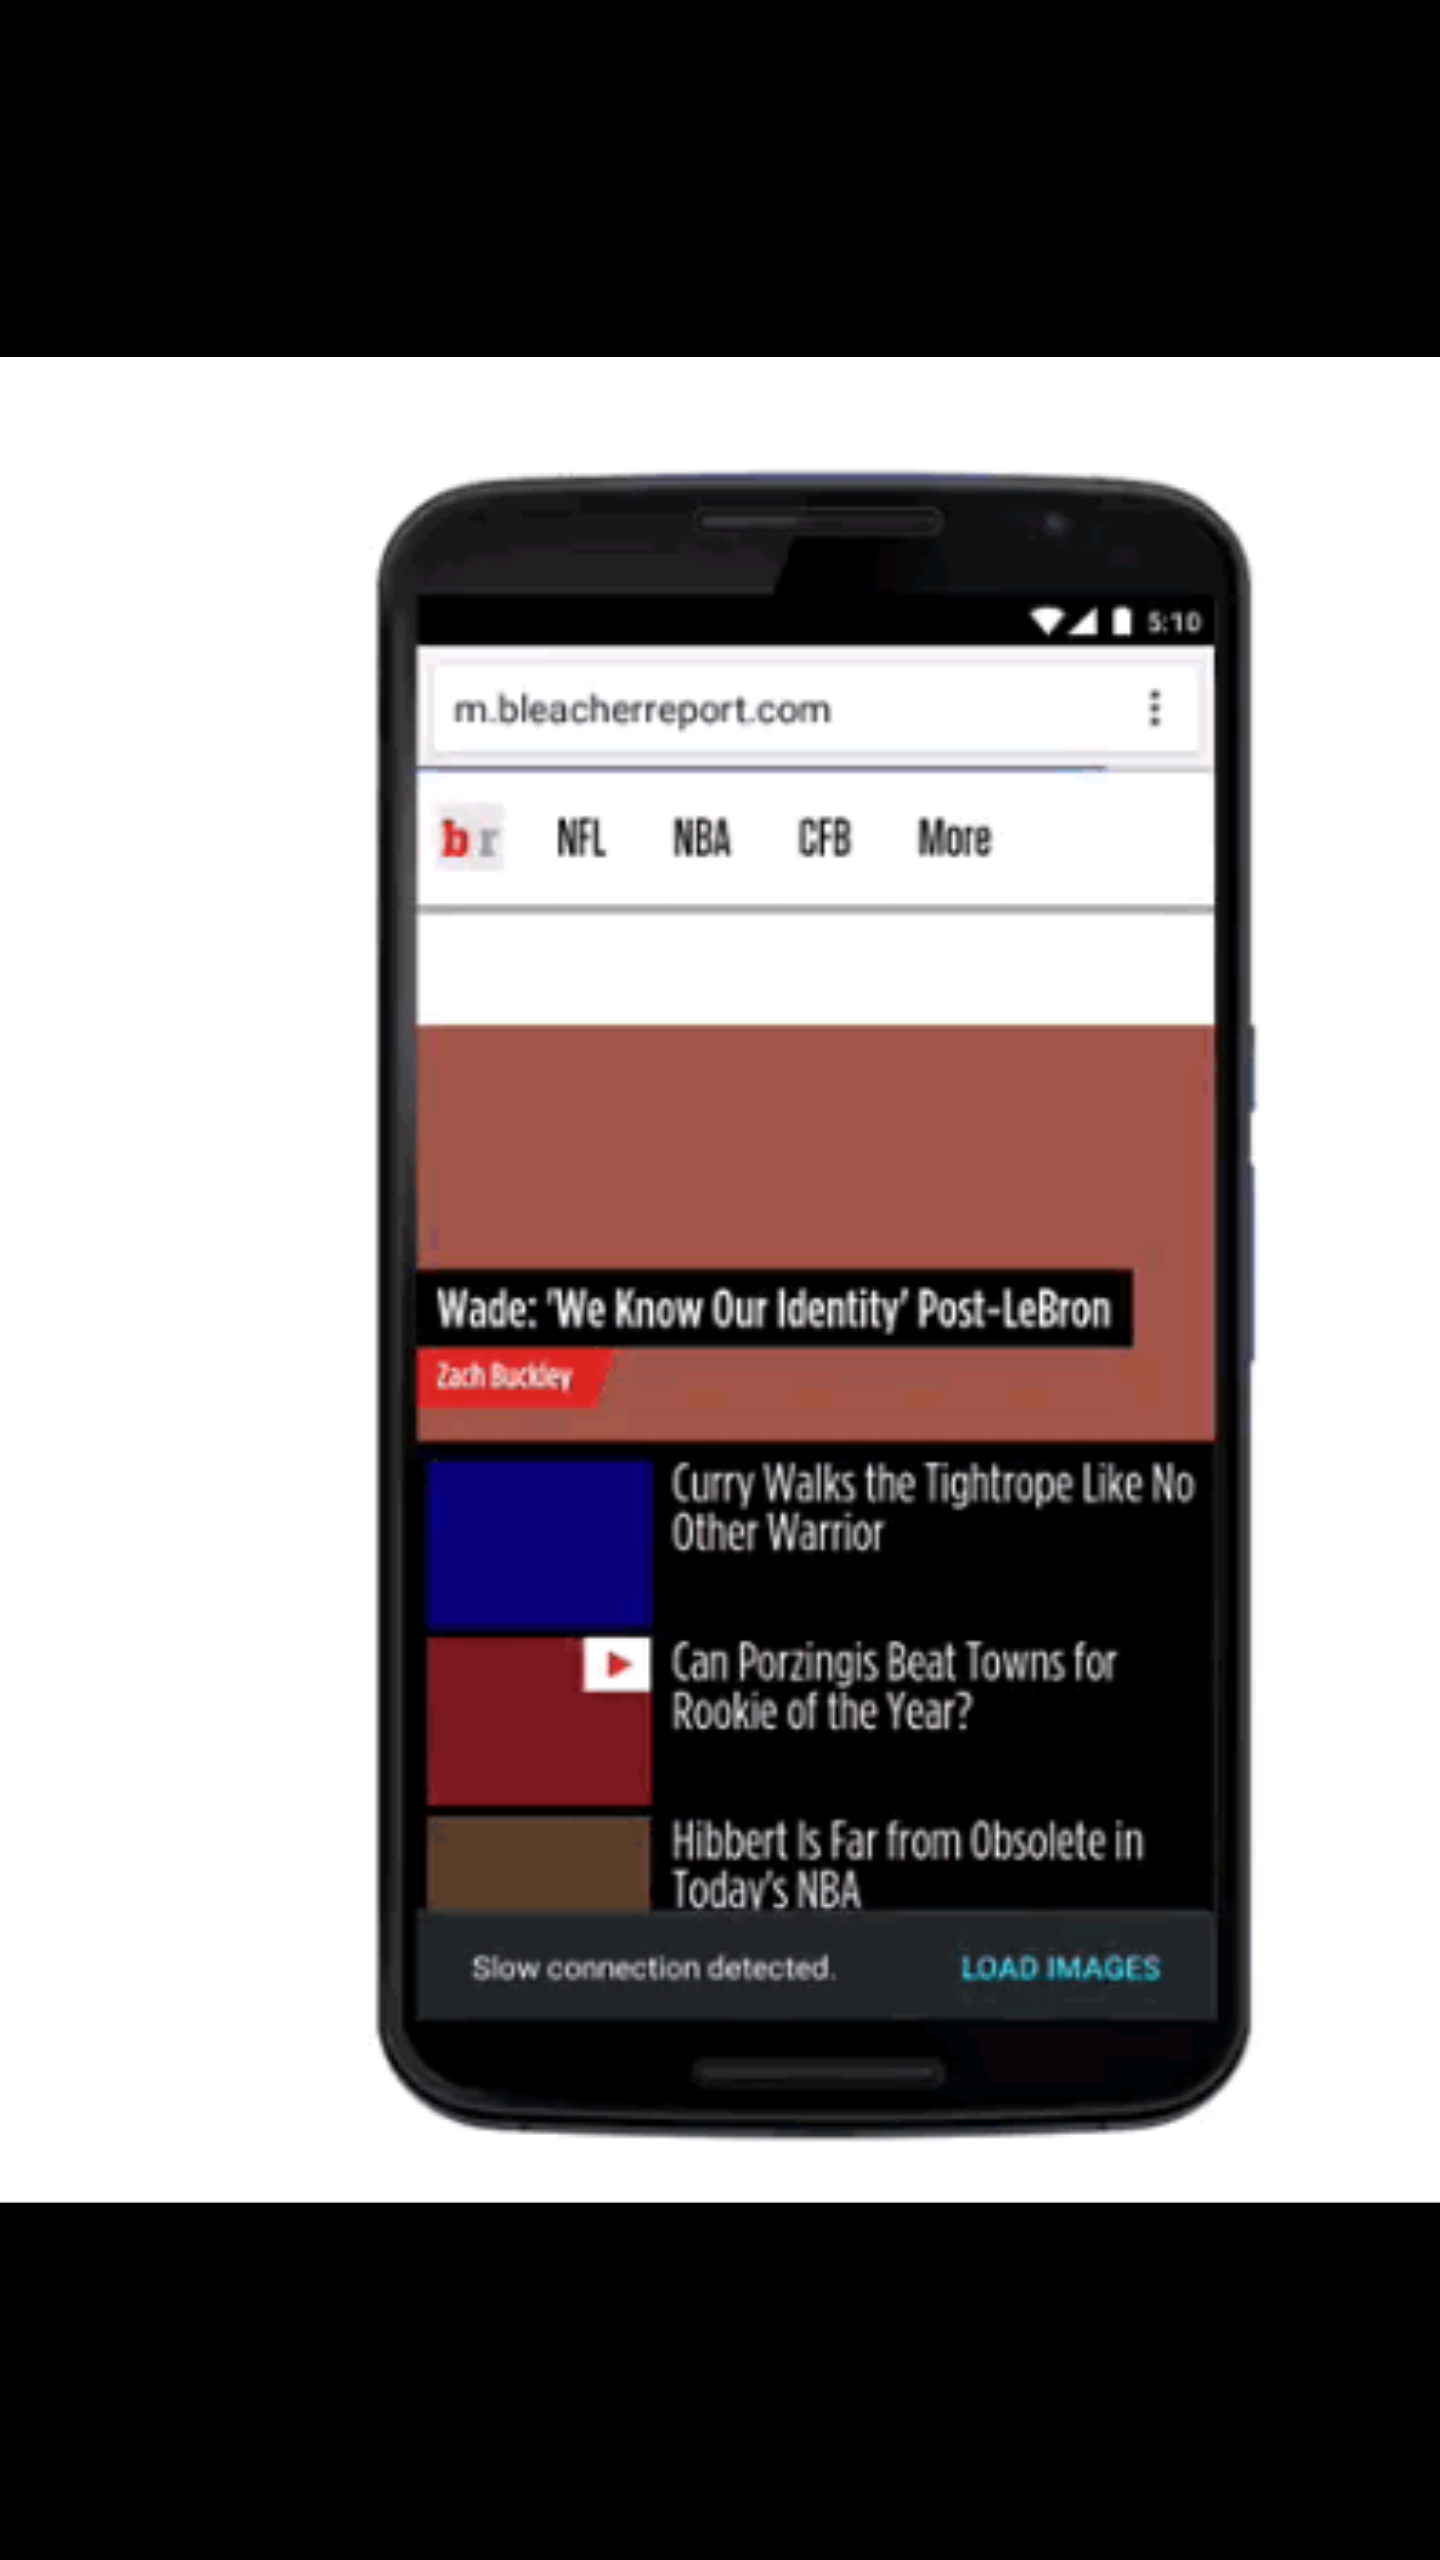 New Chrome Data Saver Mode update on Android will load text only